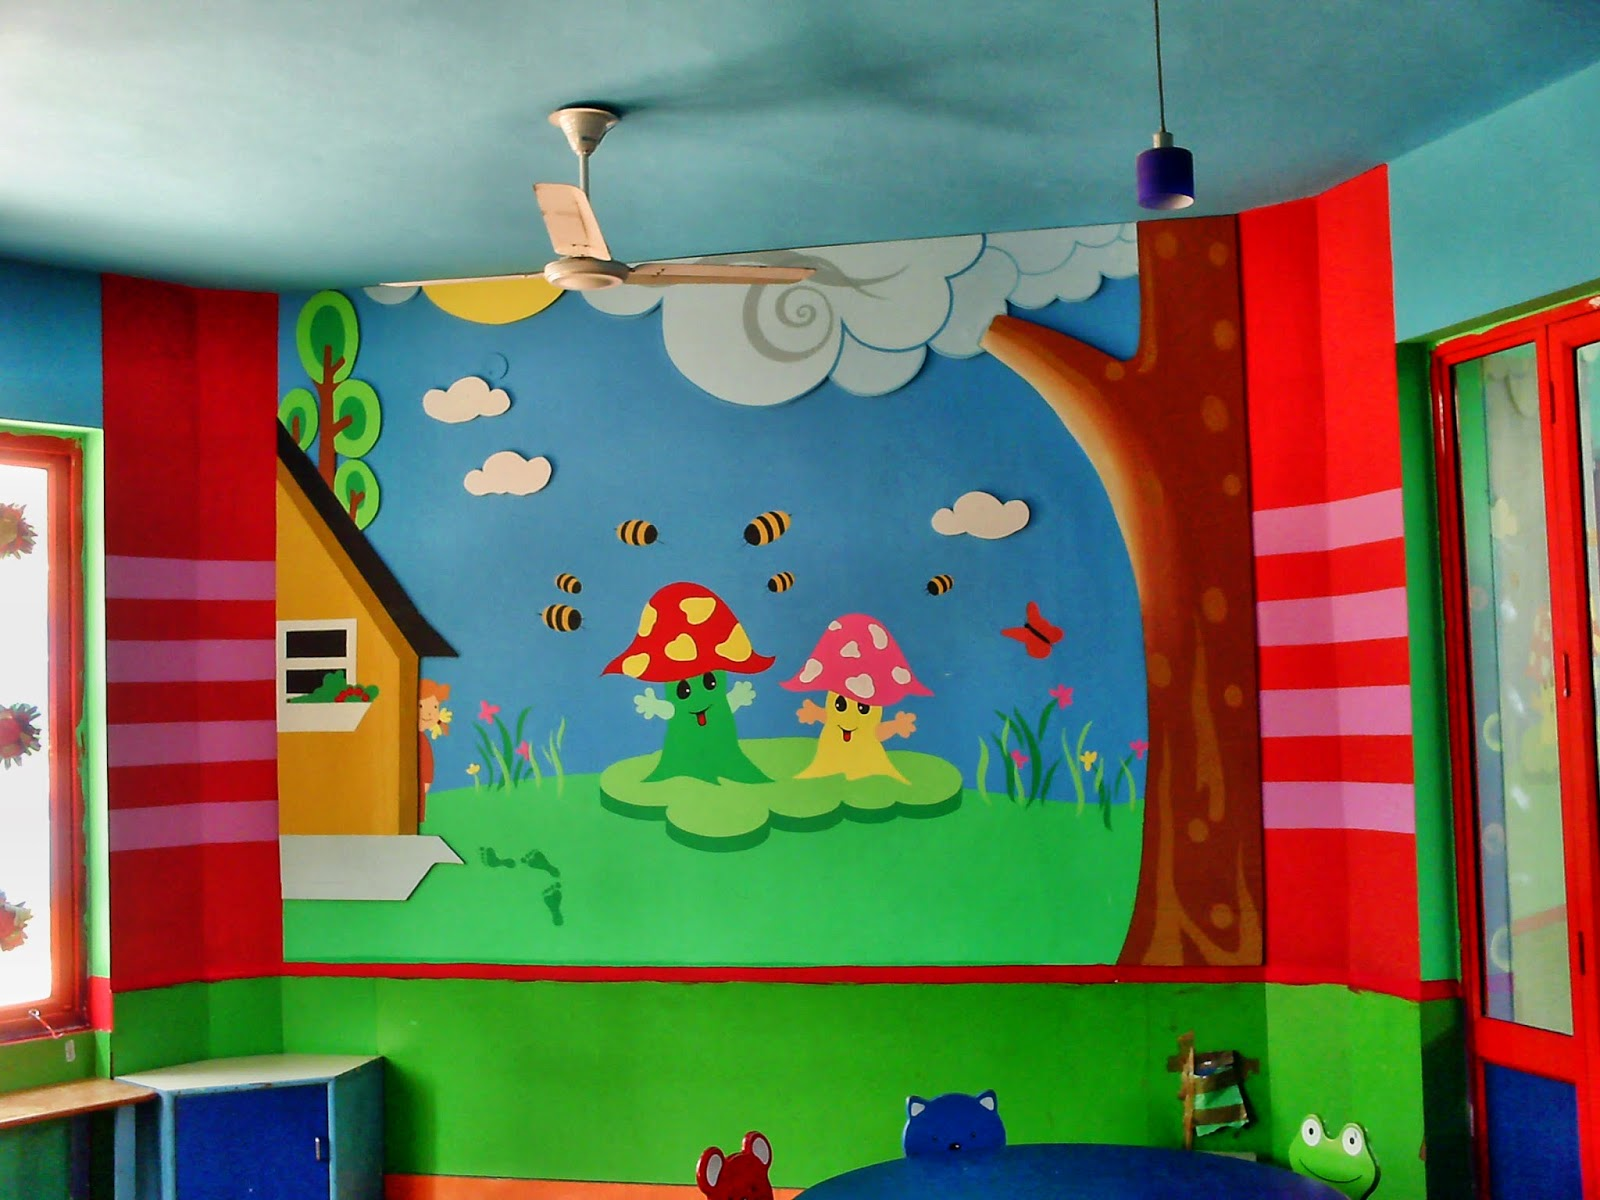 Wall Art For Play School : Best wall paintings of design sch play school